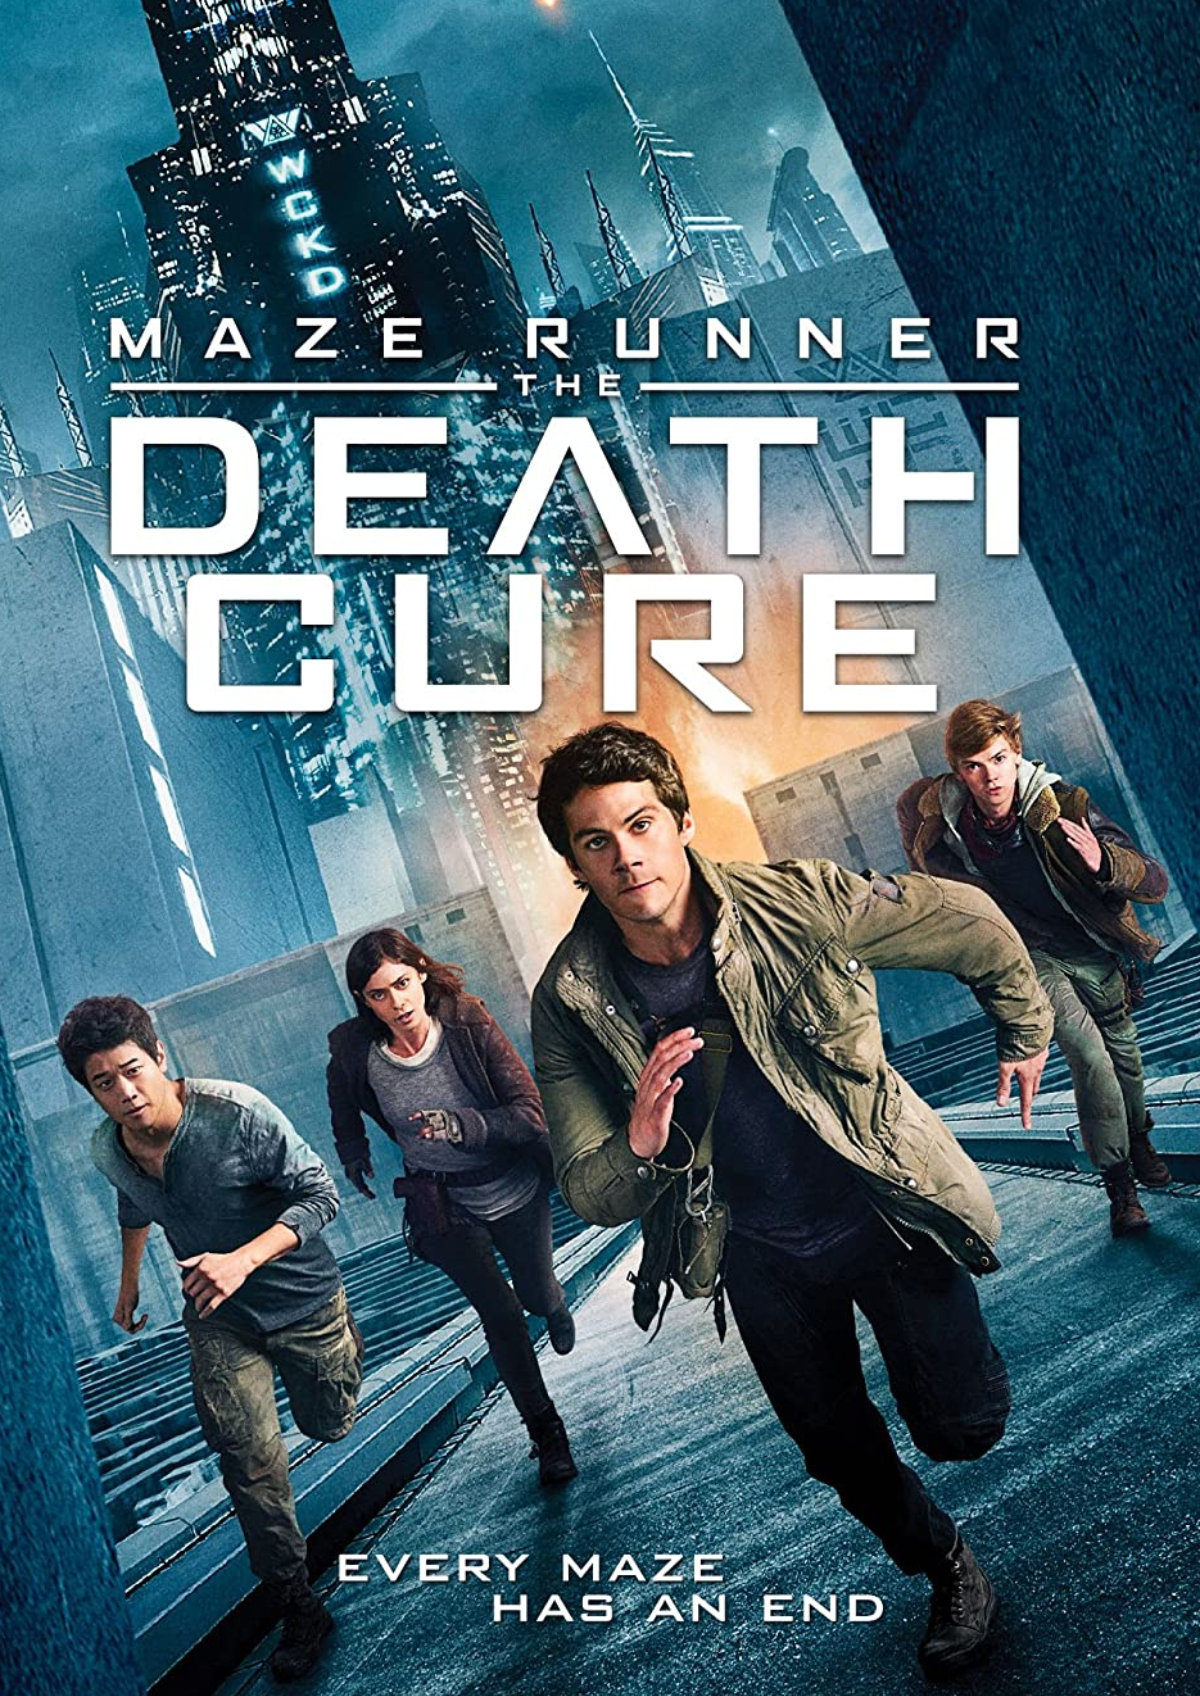 Poster for 'Maze Runner: The Death Cure'